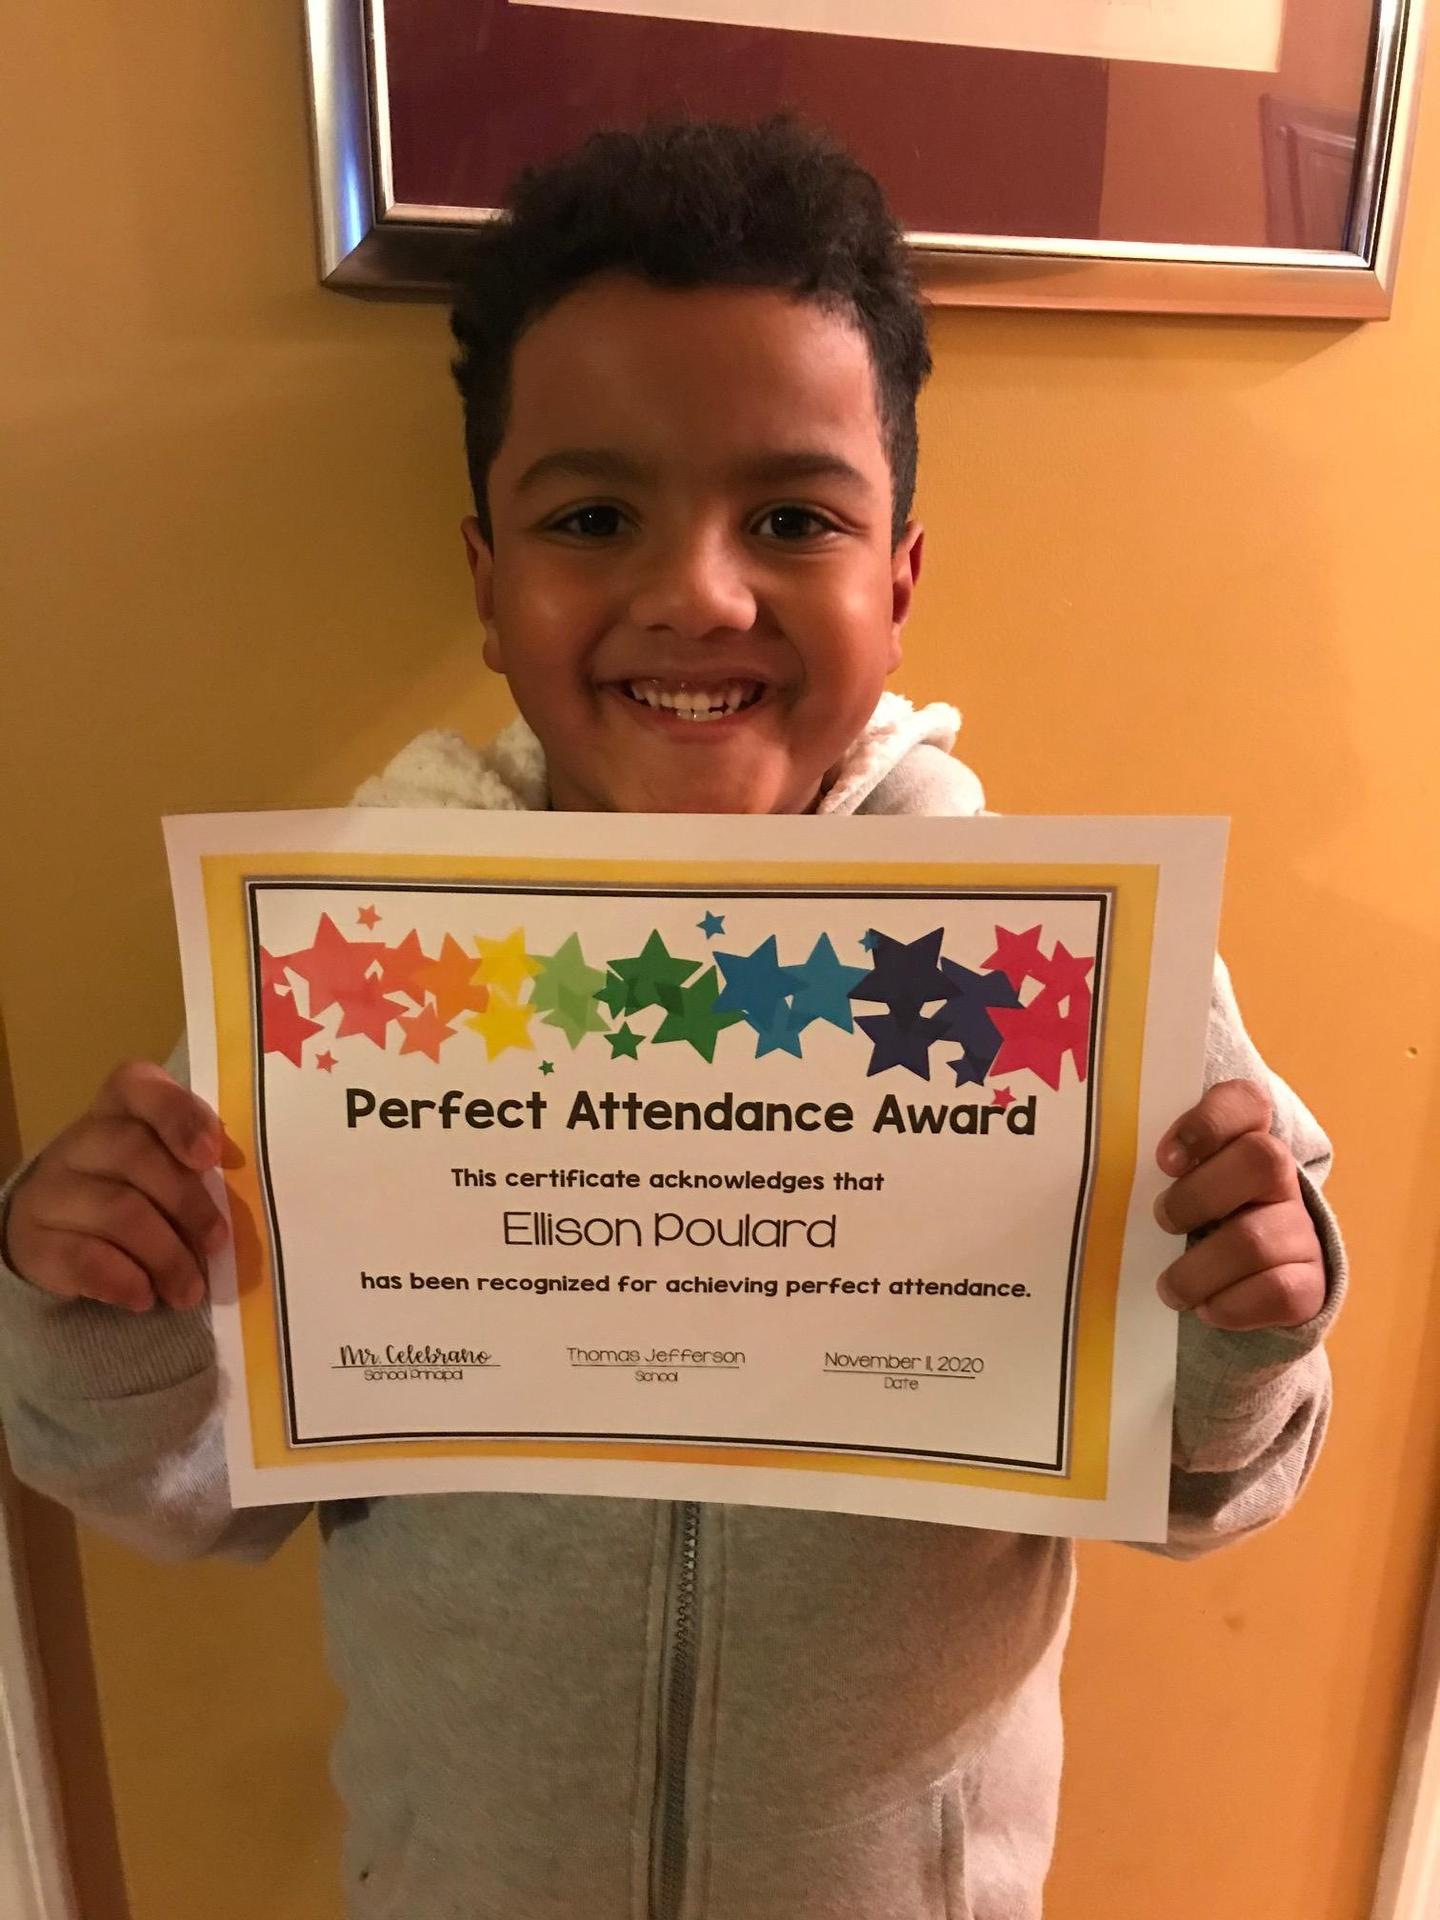 Ellison Poulard holding perfect attendance certificate